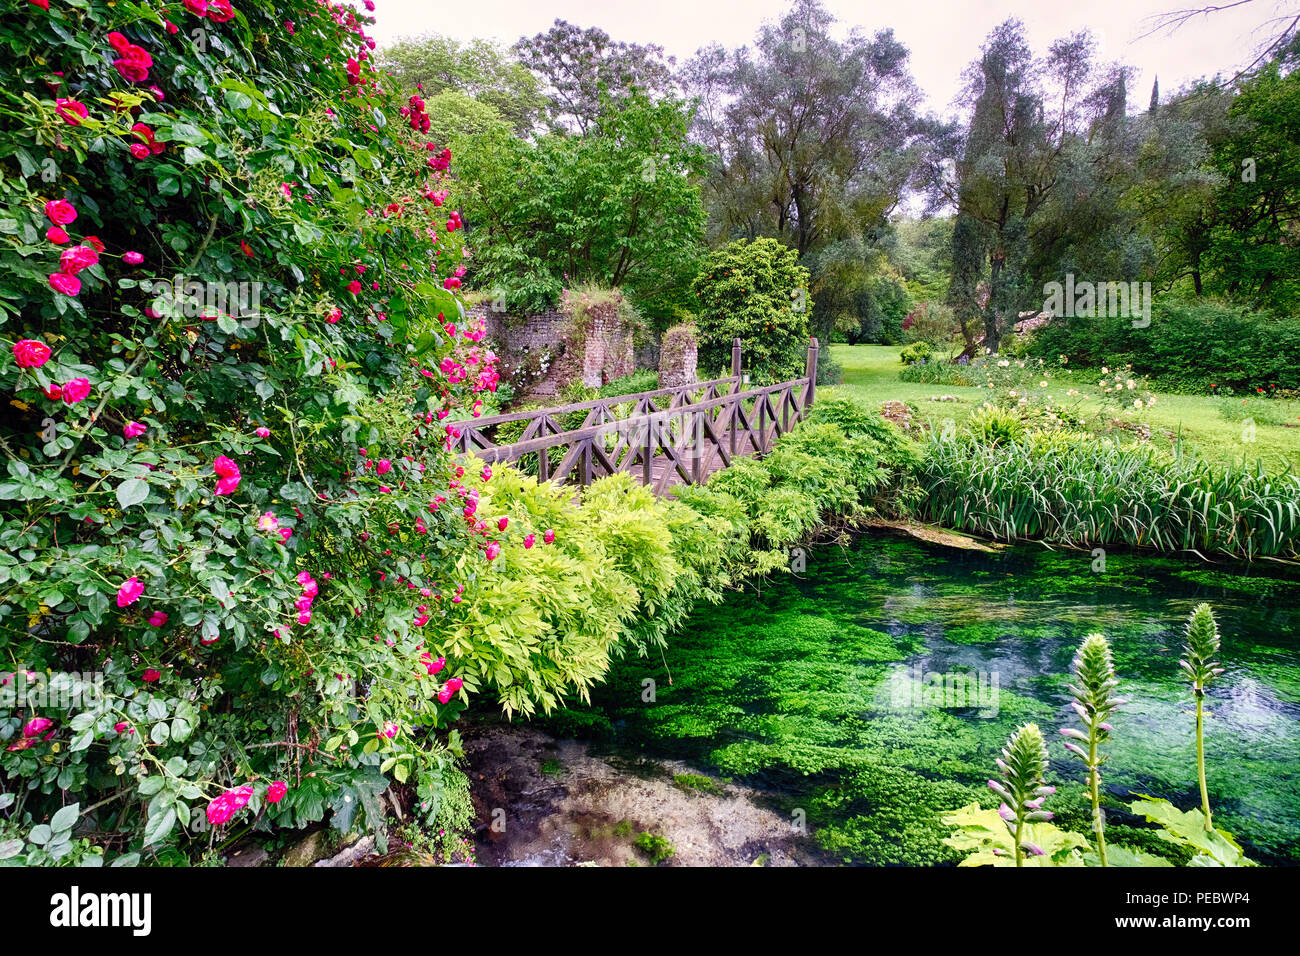 Small Footbridge Over a Creek  in a the Ninfa Garden, Cisterna di Latina, Italy - Stock Image